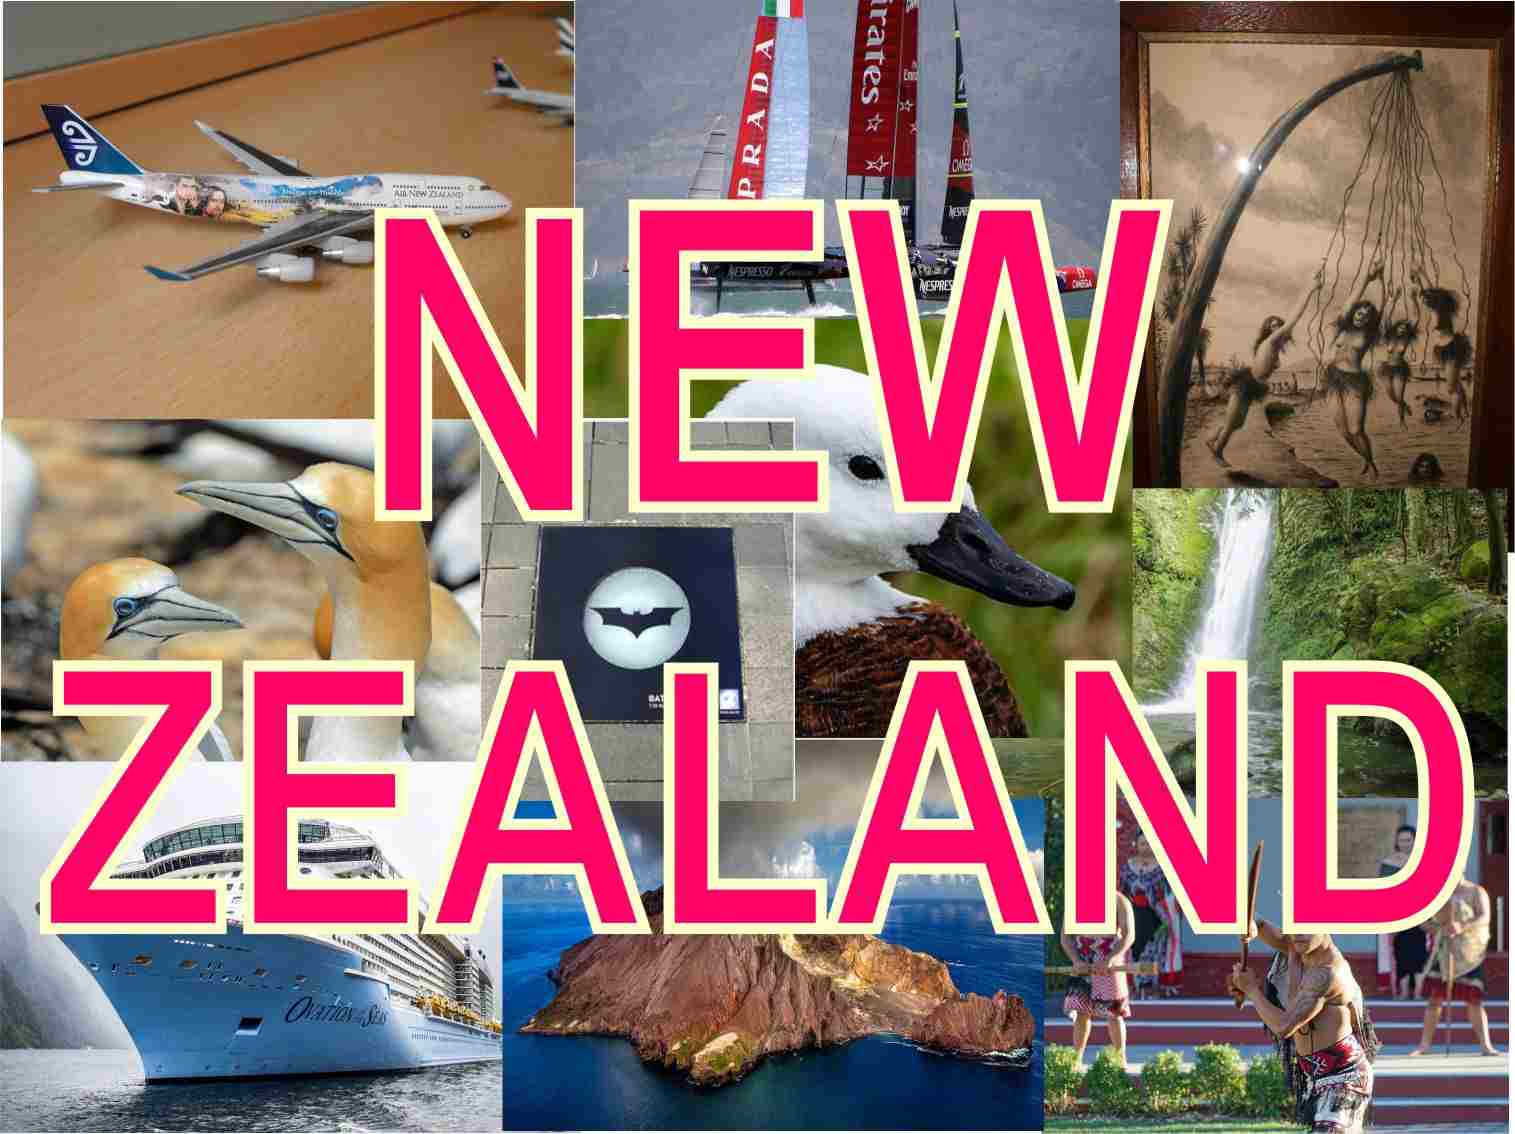 New Zealand: what to see in different cities, what are they